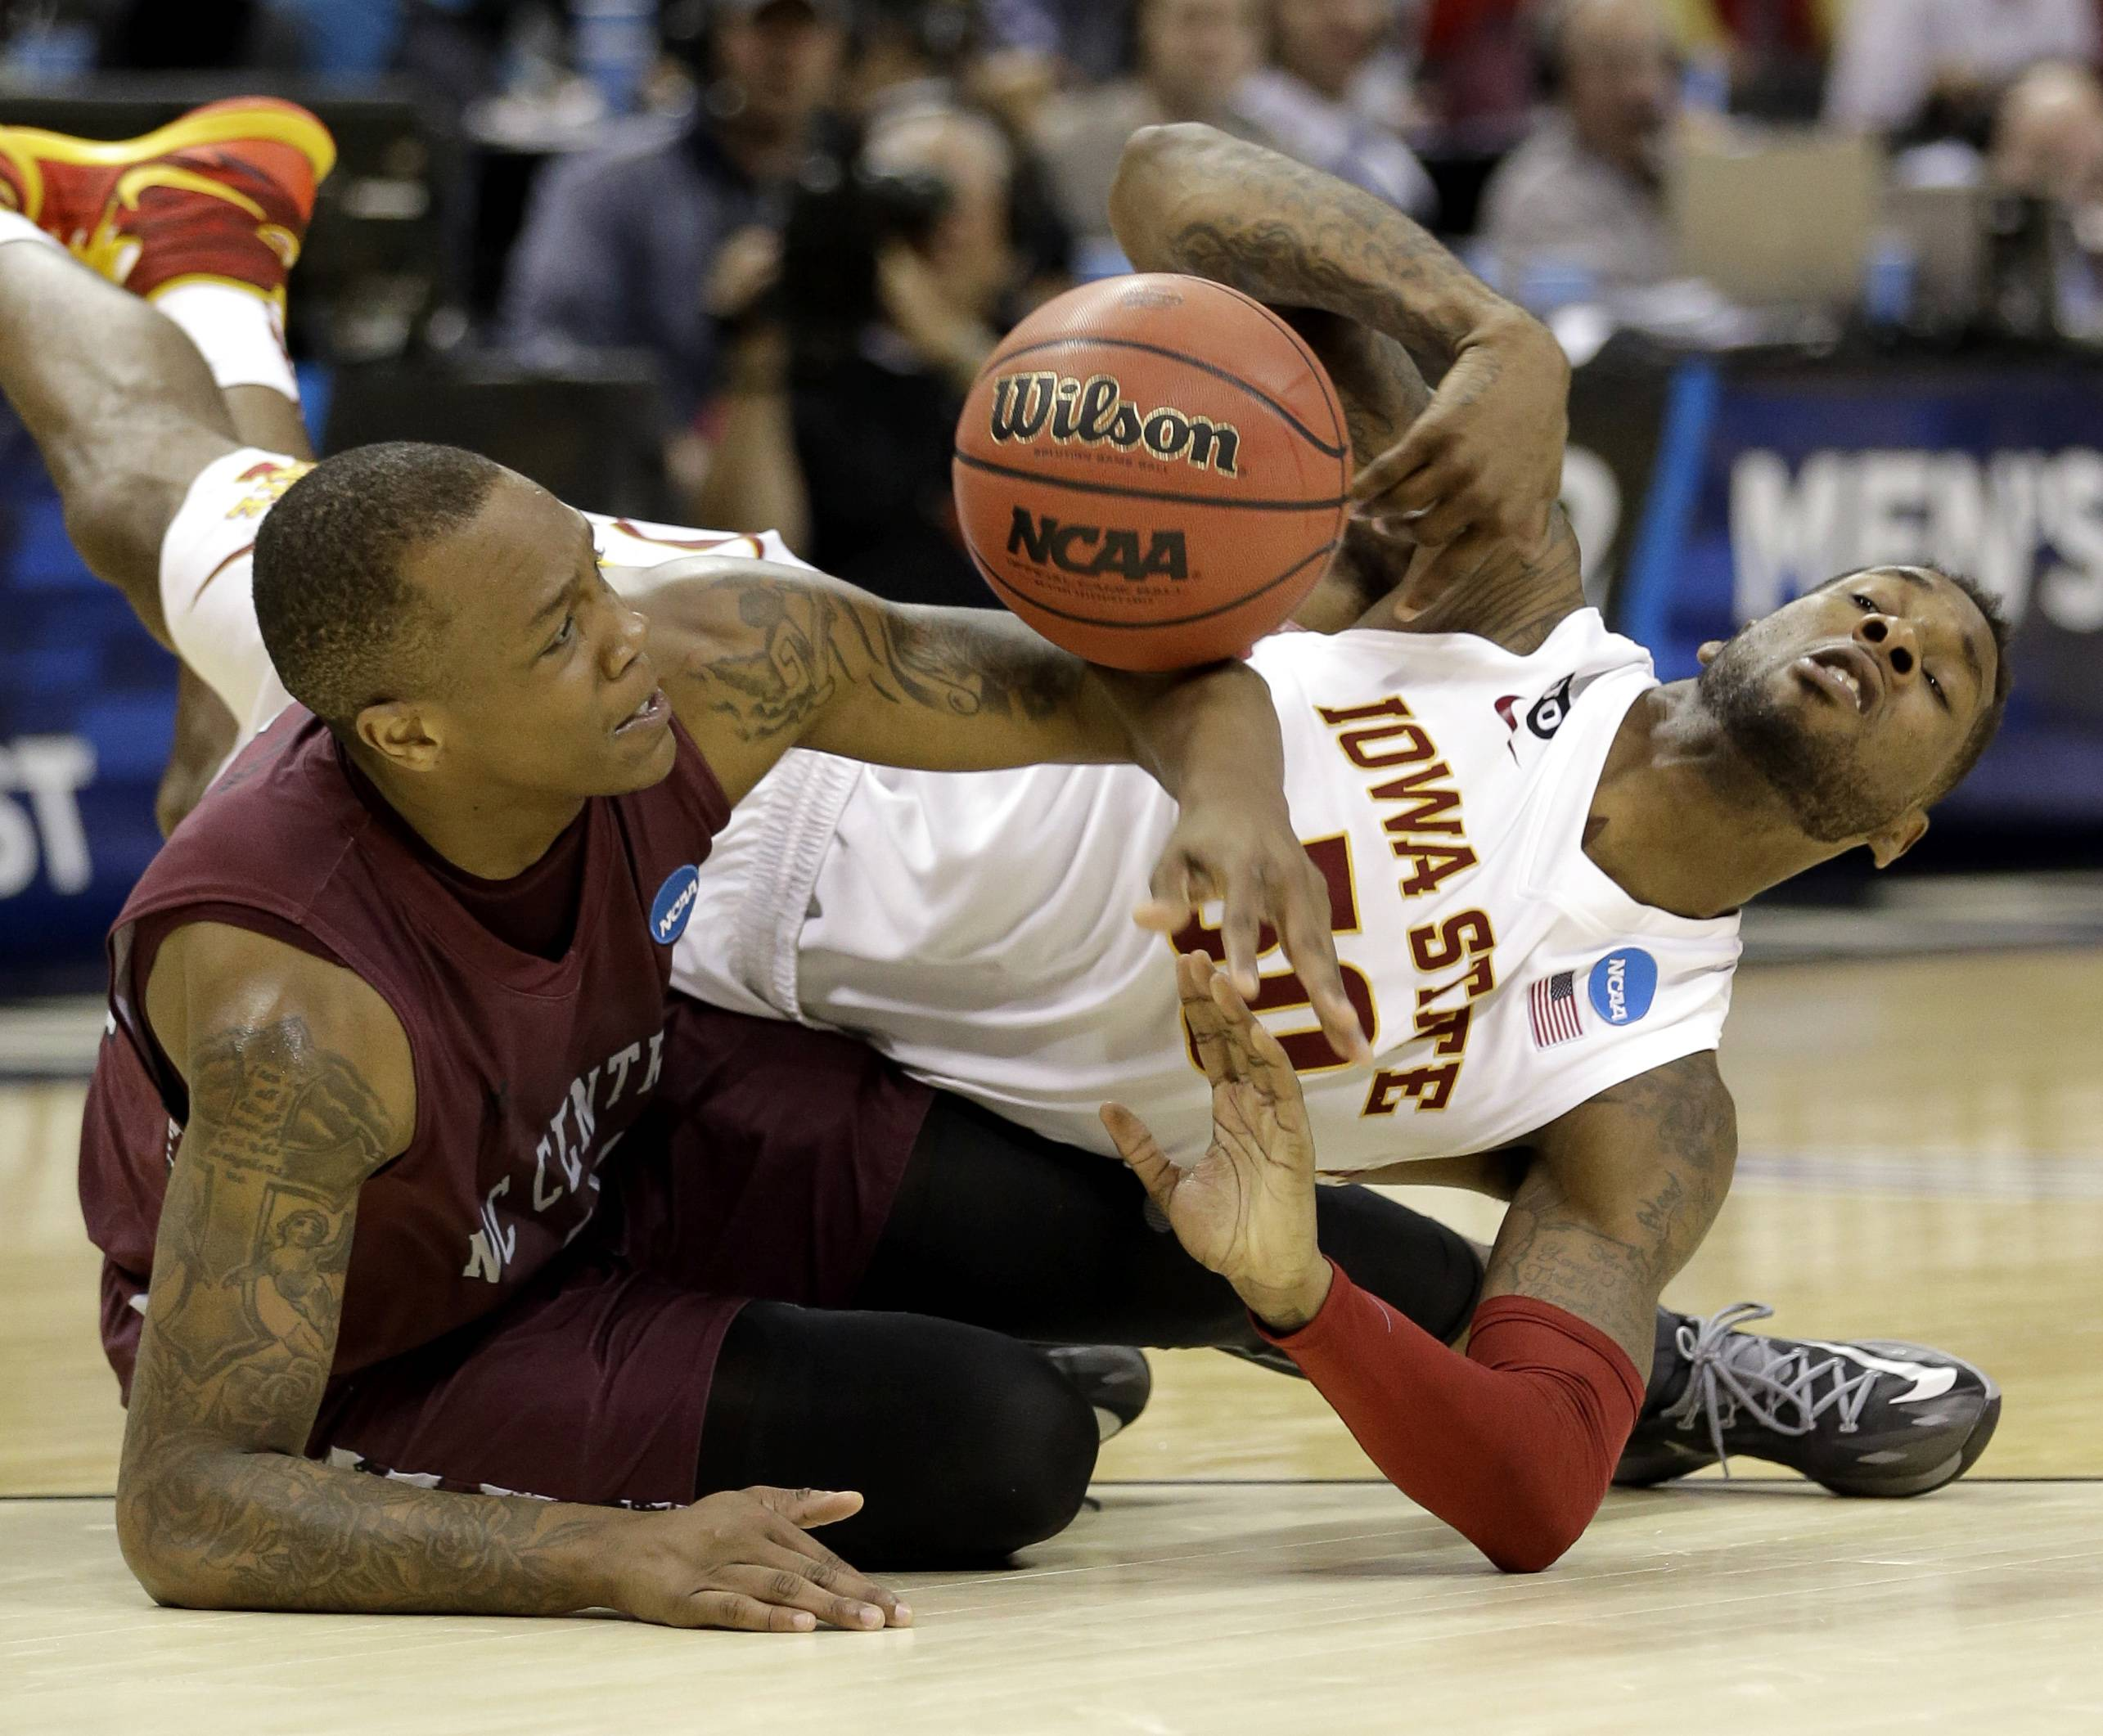 Iowa State's DeAndre Kane battles North Carolina Central's Alfonzo Houston for a loose ball during an NCAA tournament game Friday, in San Antonio. Iowa State won 93-75.